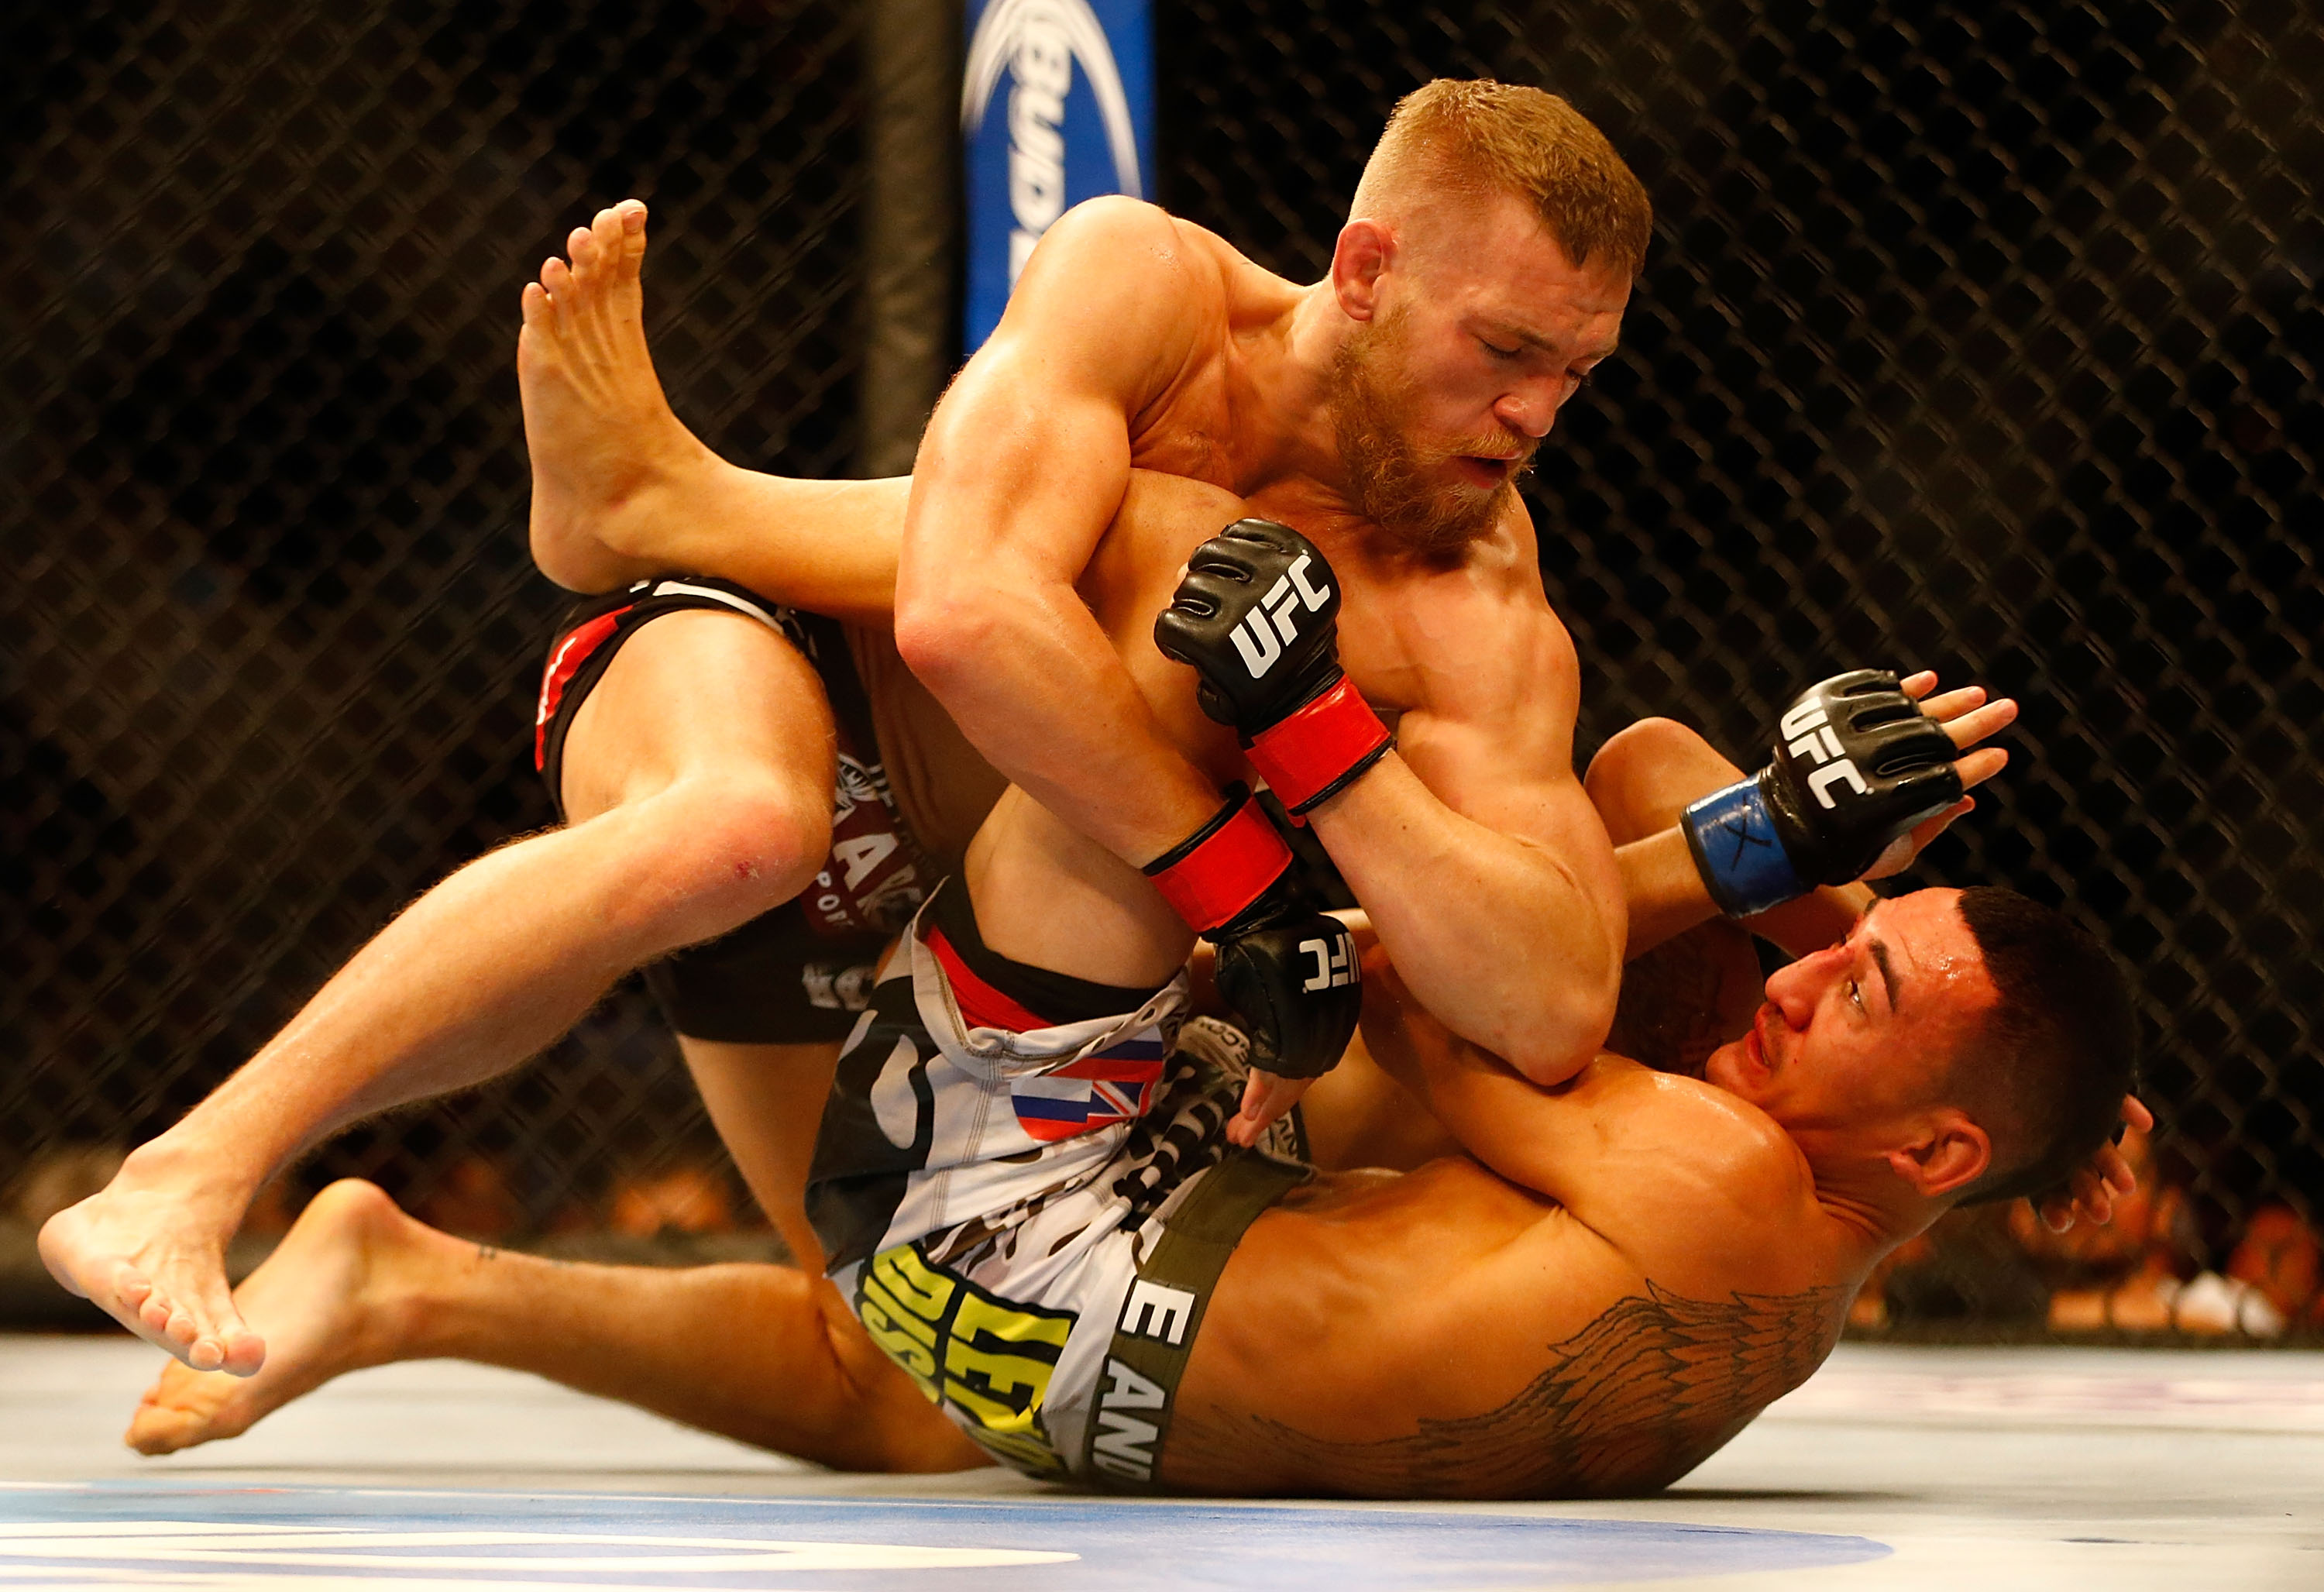 Conor McGregor beat Max Holloway in his second fight in the UFC back in 2013